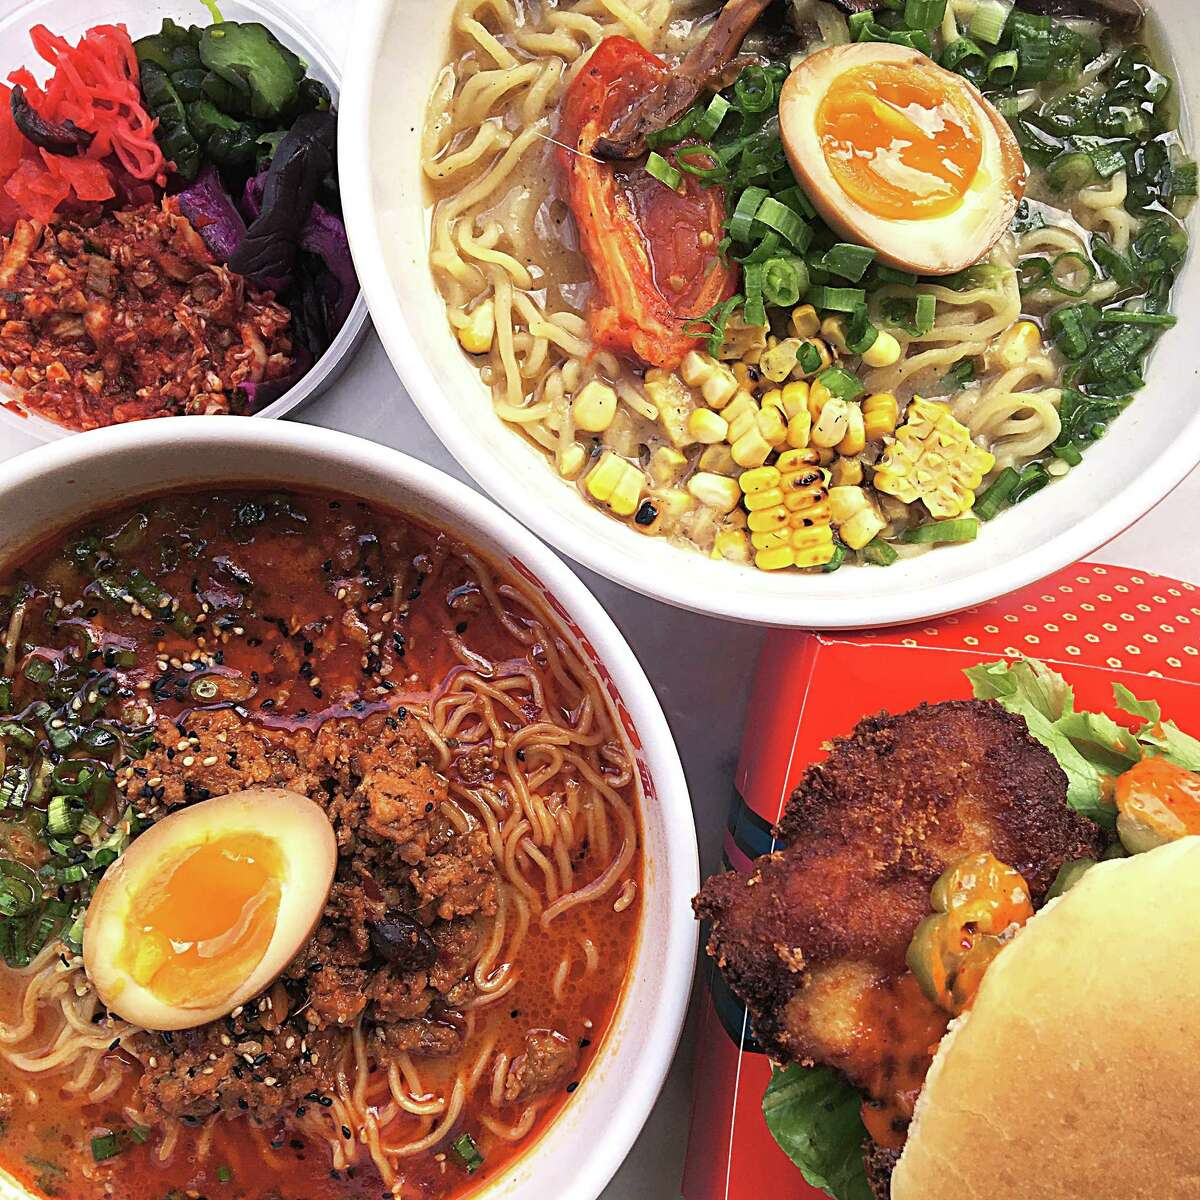 Food from Tenko Ramen at the Bottling Department food hall at The Pearl. Clockwise from top left: kimchi, Double Mushroom ramen, chicken katsu sandwich and Spicy Miso Tantan-men ramen.